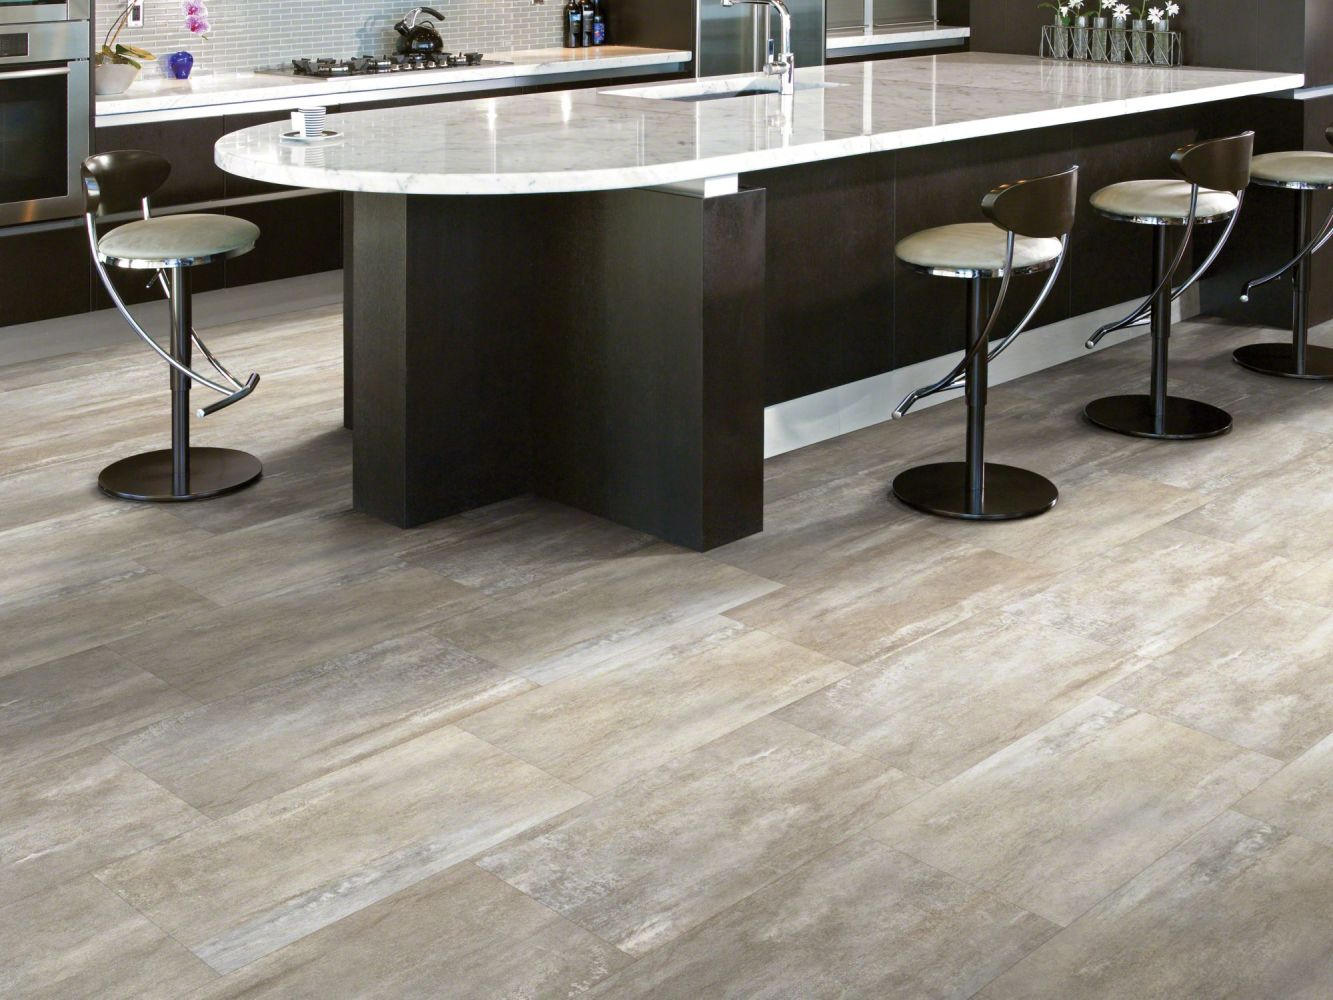 Shaw Floors Nfa Premier Gallery Resilient Wentworth Jasmine 00244_VH531